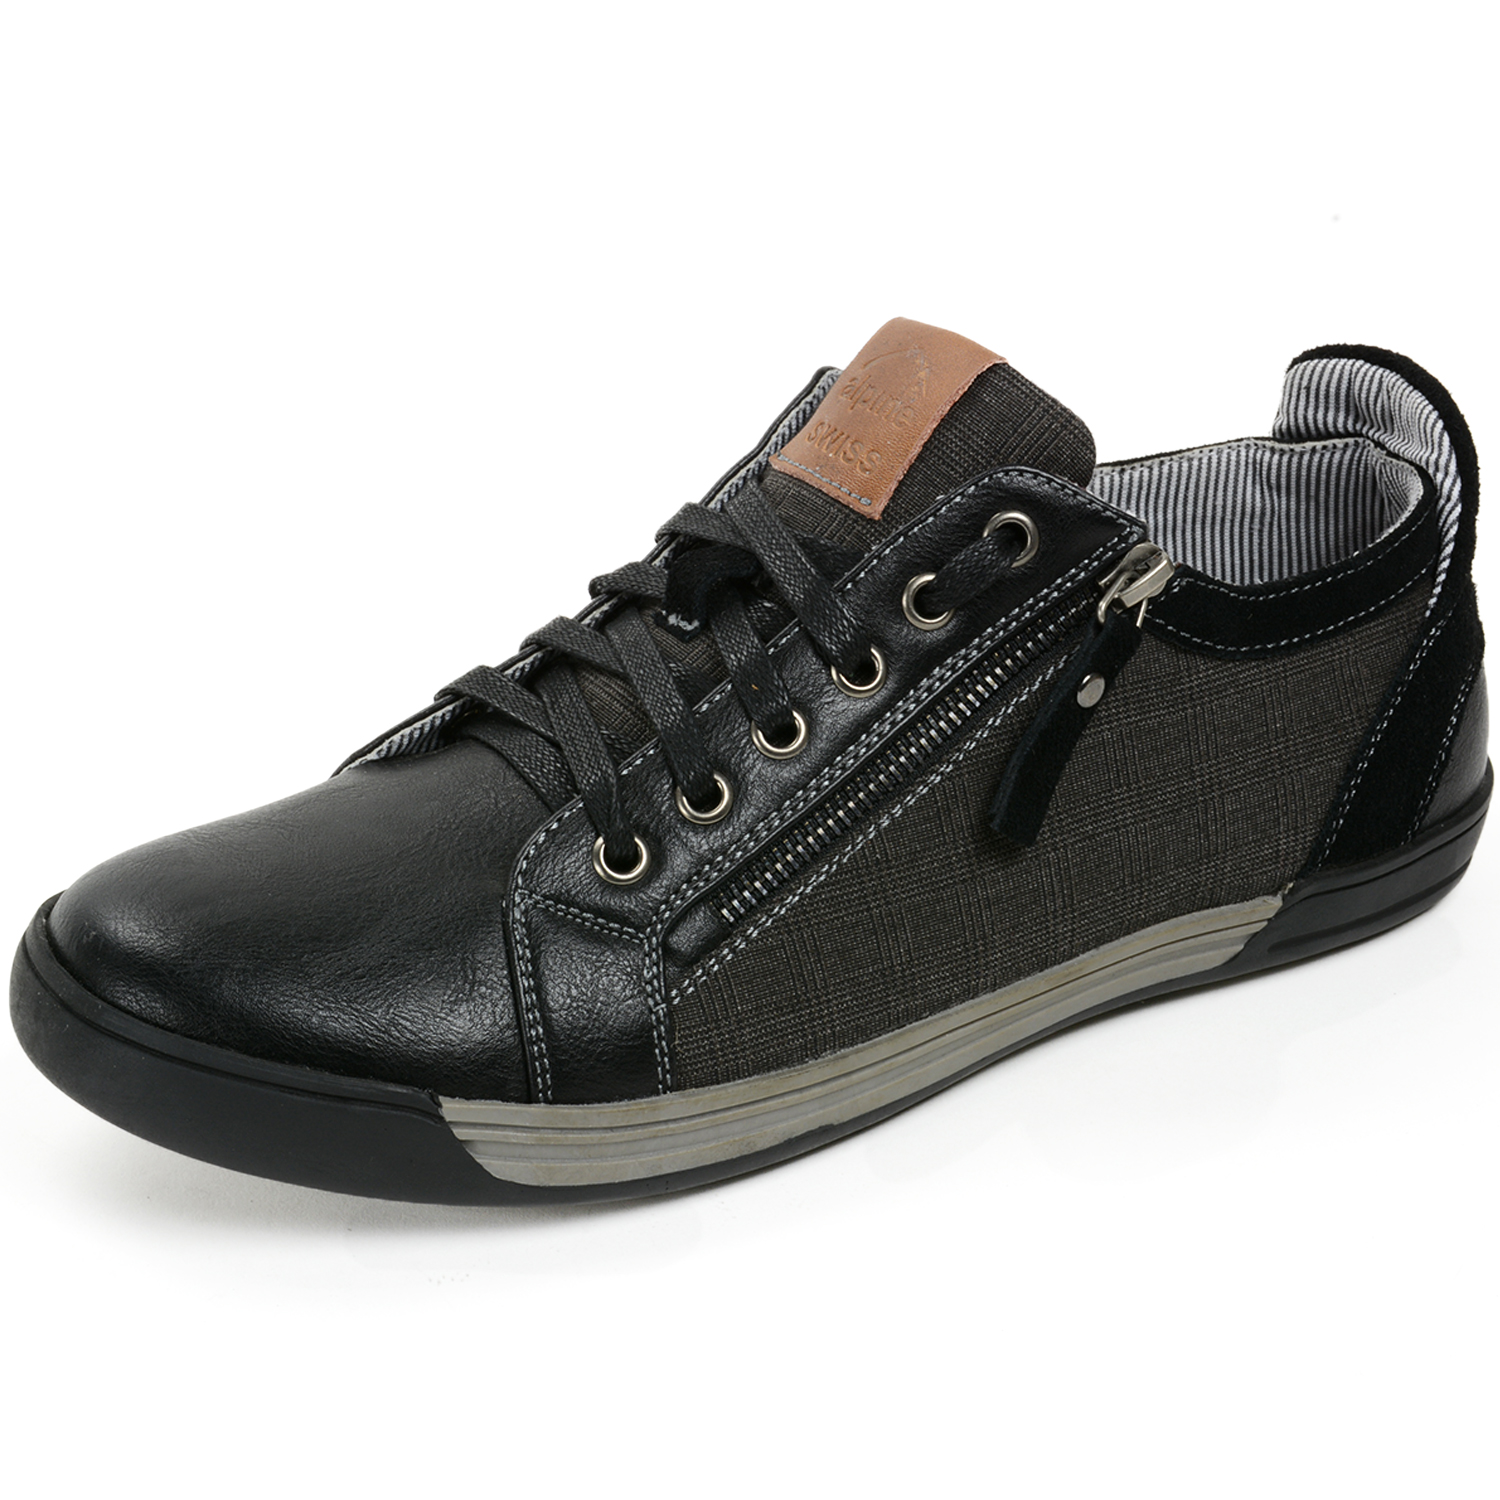 Alpine Swiss Fabian Mens Casual Sneakers Low Top Lace Up ...